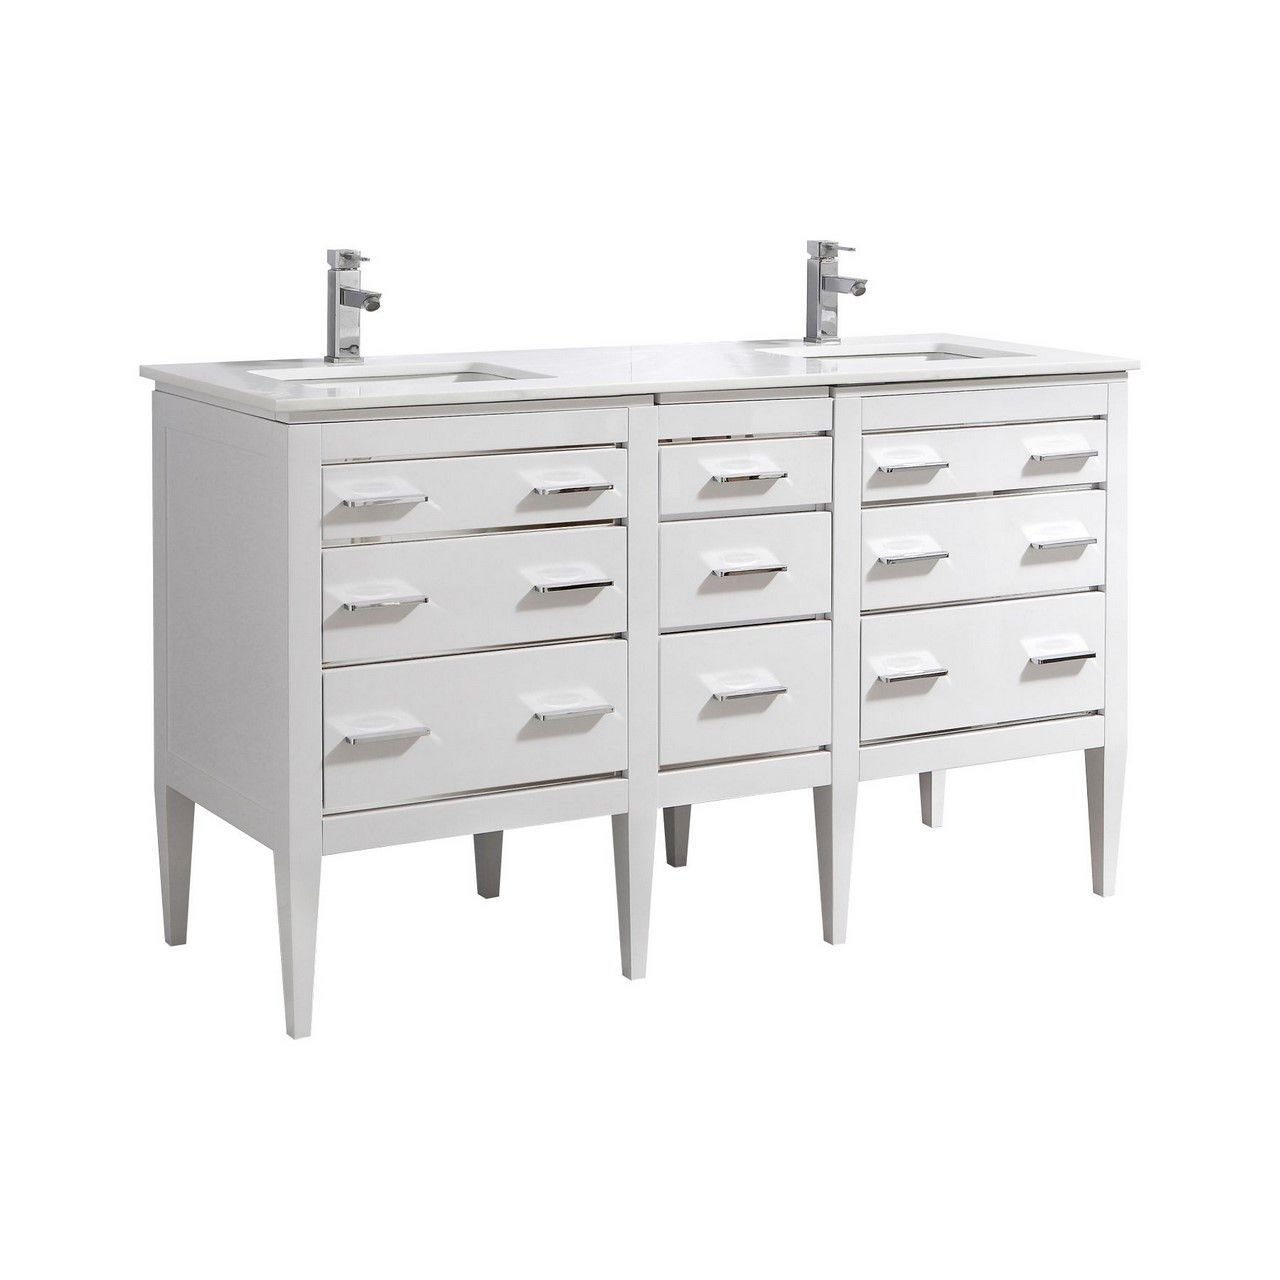 Eiffel 60'' Double Sink High Gloss White Vanity W/ Quartz Counter Top